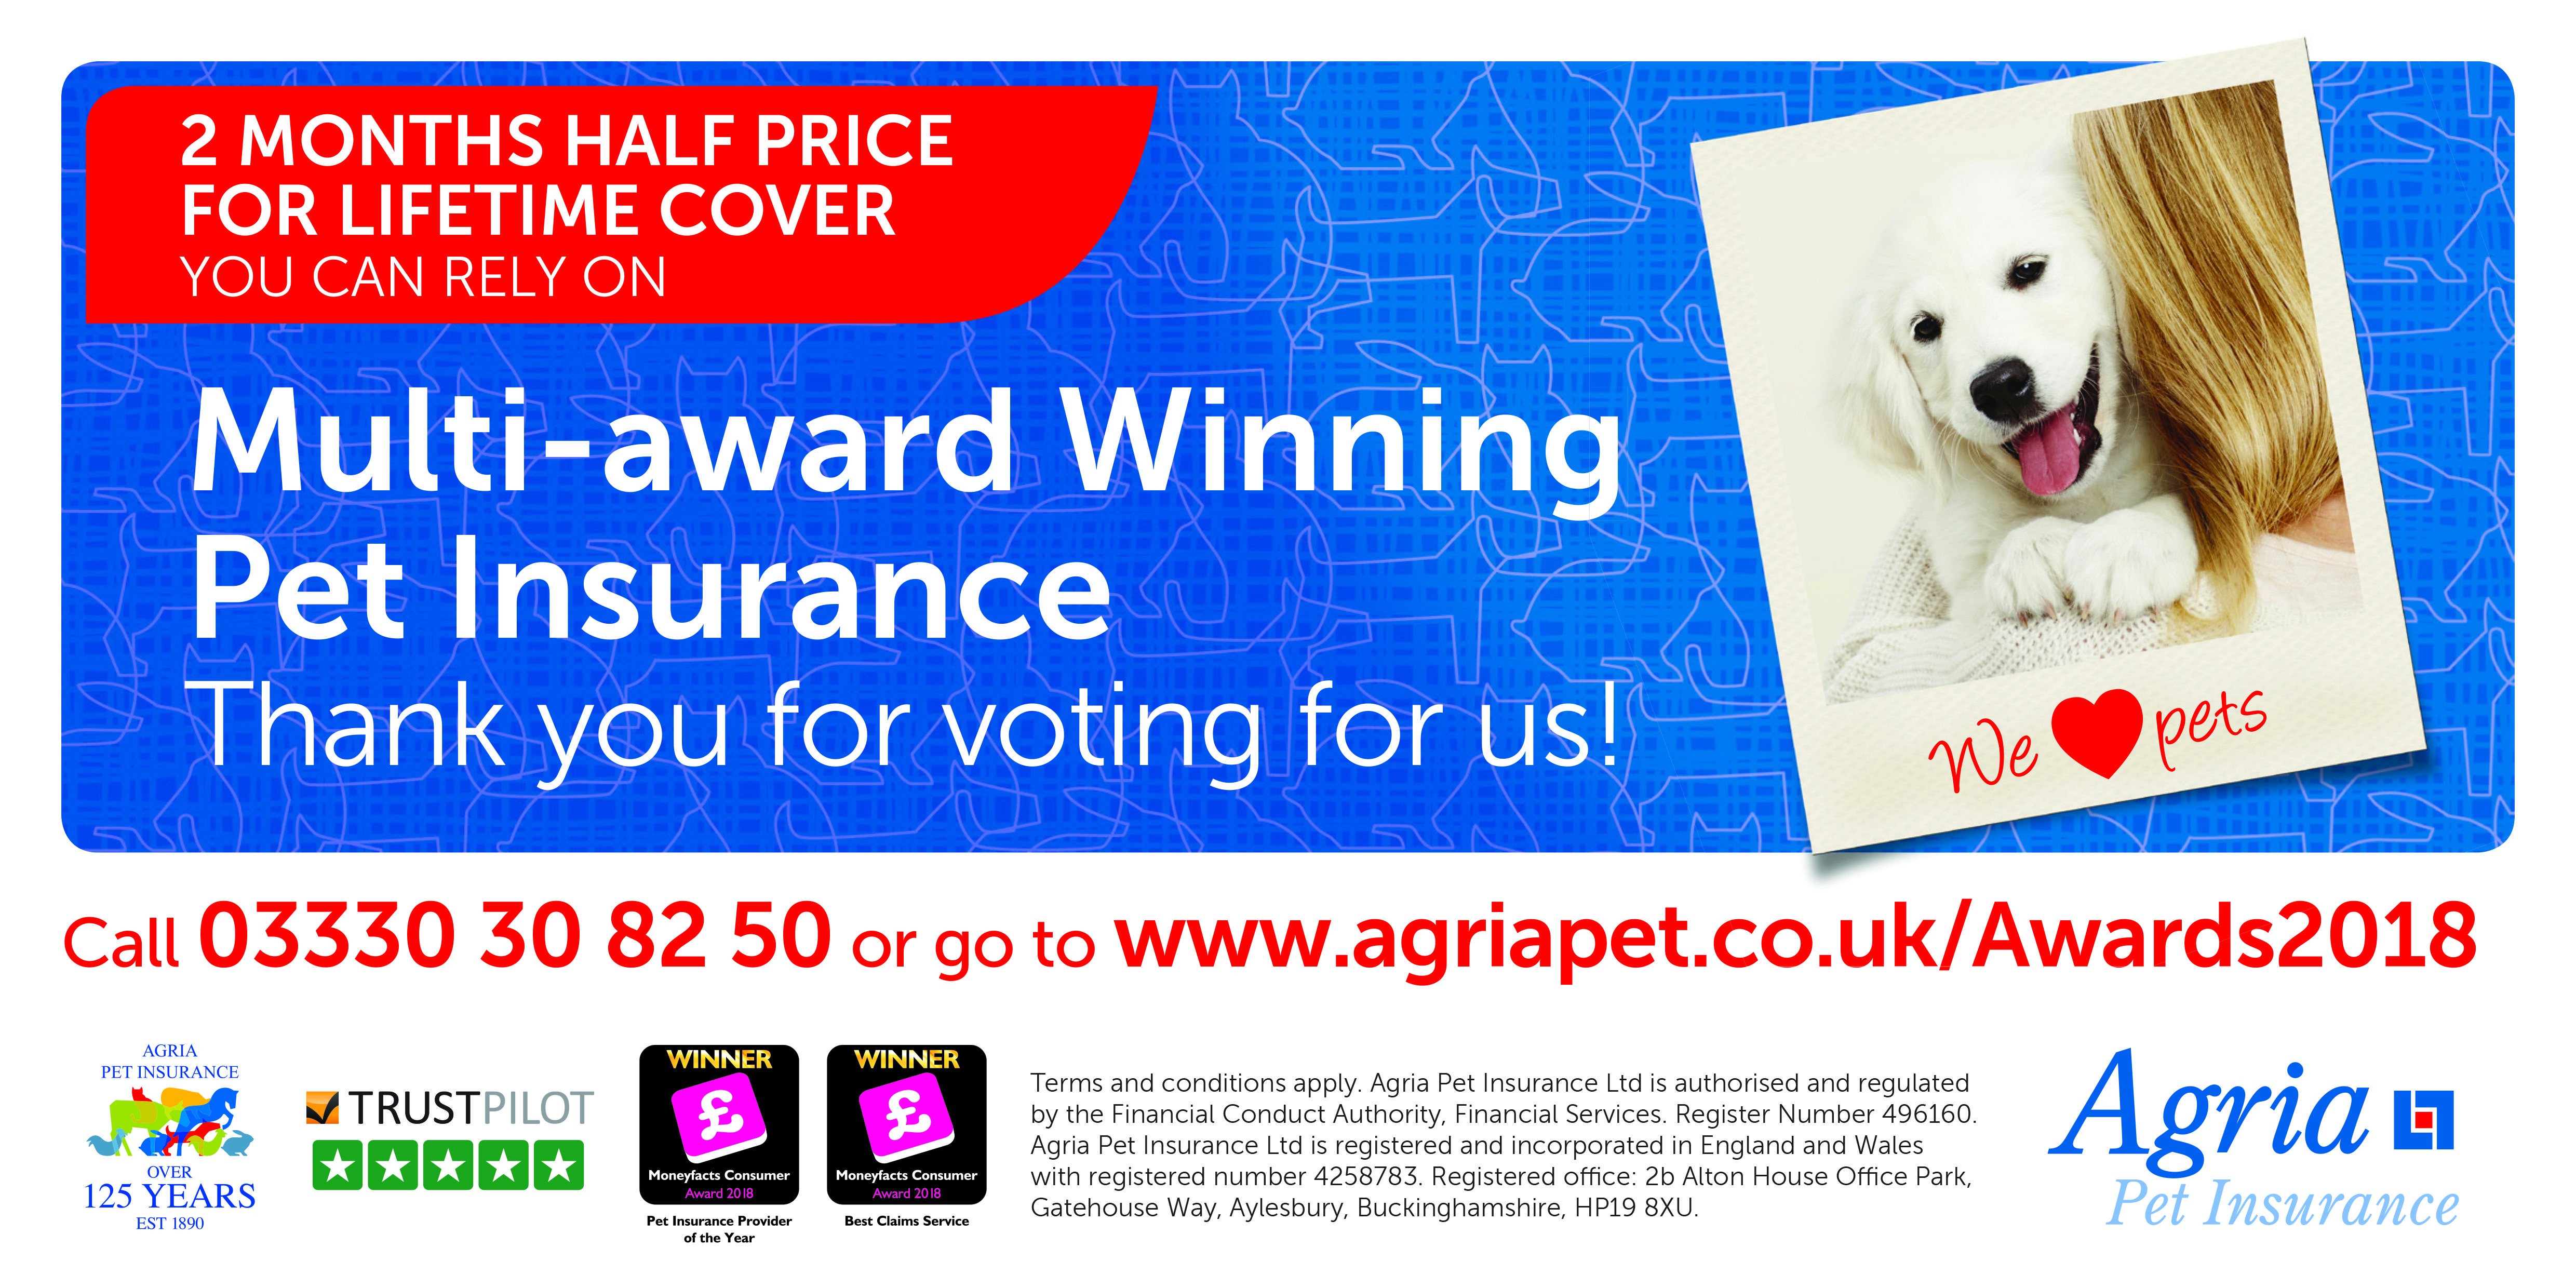 Advert From Agria Pet Insurance Featuring The Mfcawards Logo